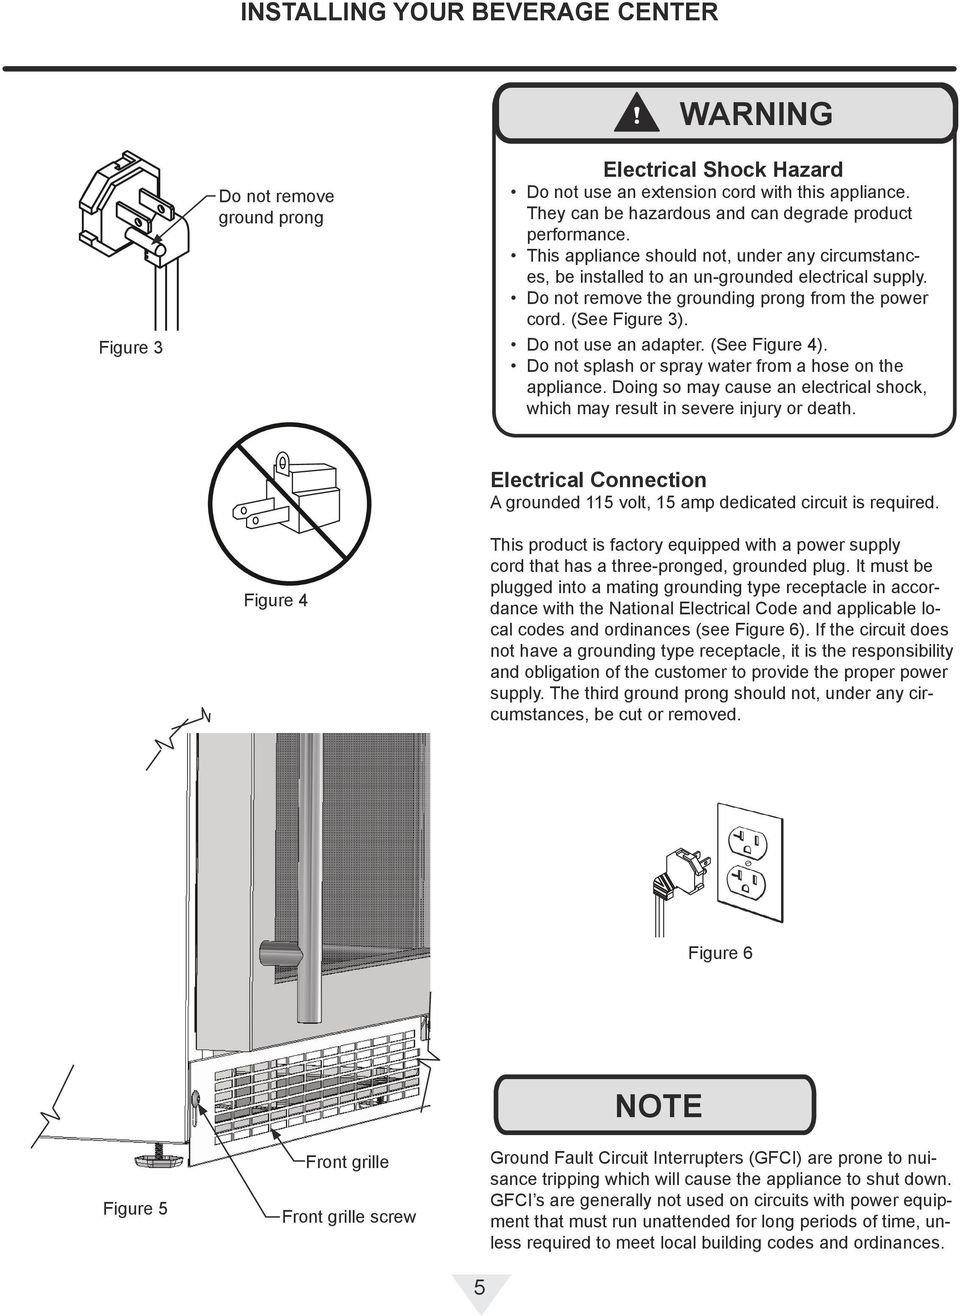 Do not remove the grounding prong from the power cord. (See Figure 3). Do not use an adapter. (See Figure 4). Do not splash or spray water from a hose on the appliance.